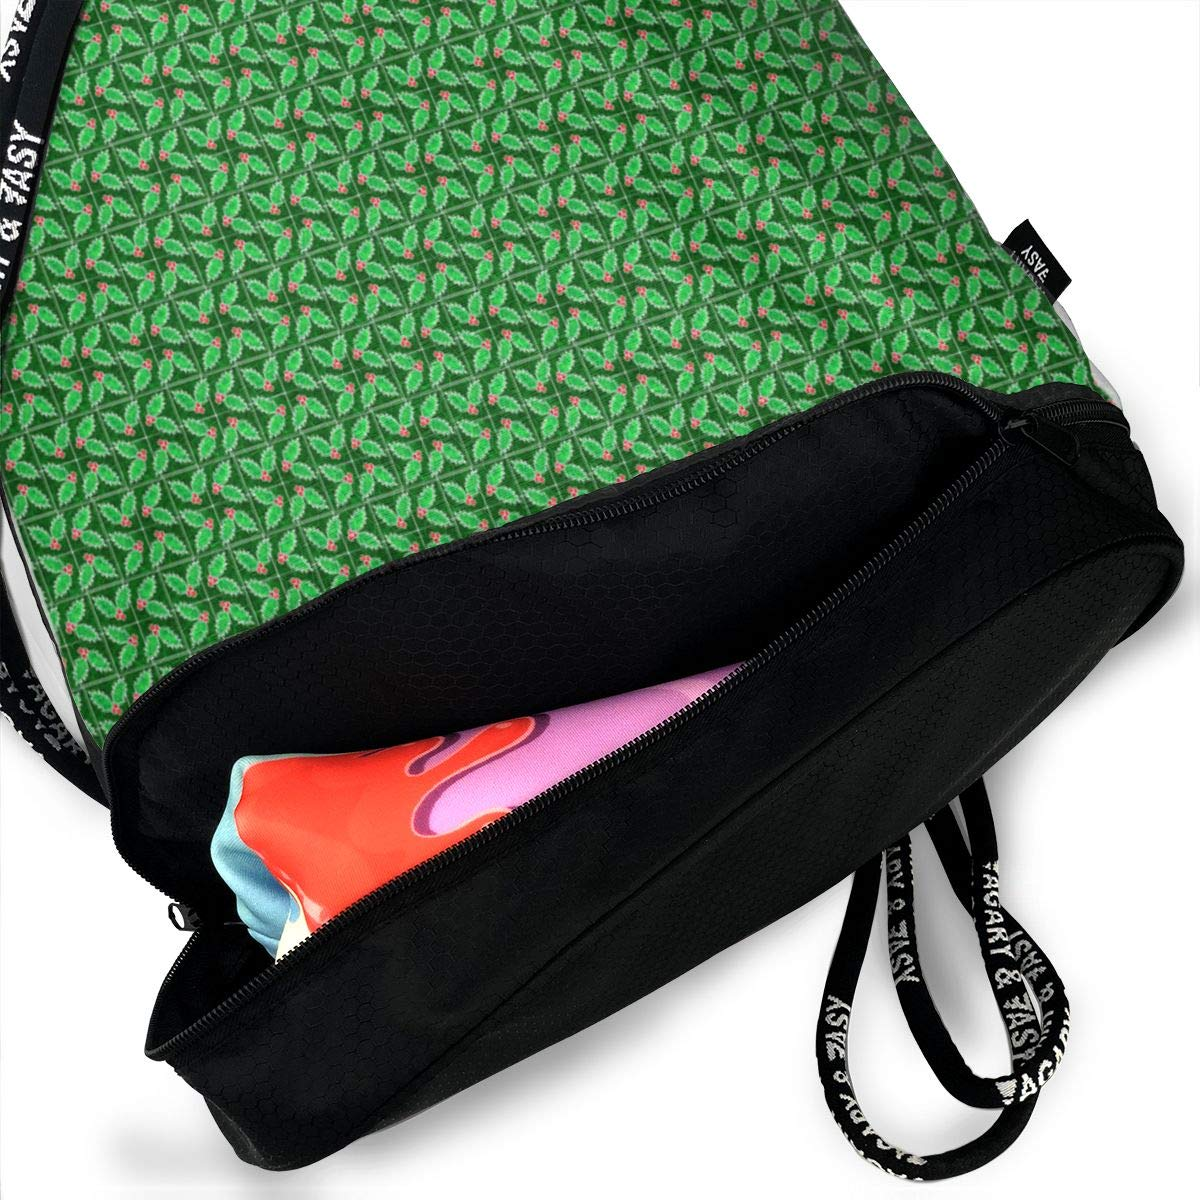 Marble Mosaic Tiny Holly Drawstring Backpack Sports Athletic Gym Cinch Sack String Storage Bags for Hiking Travel Beach